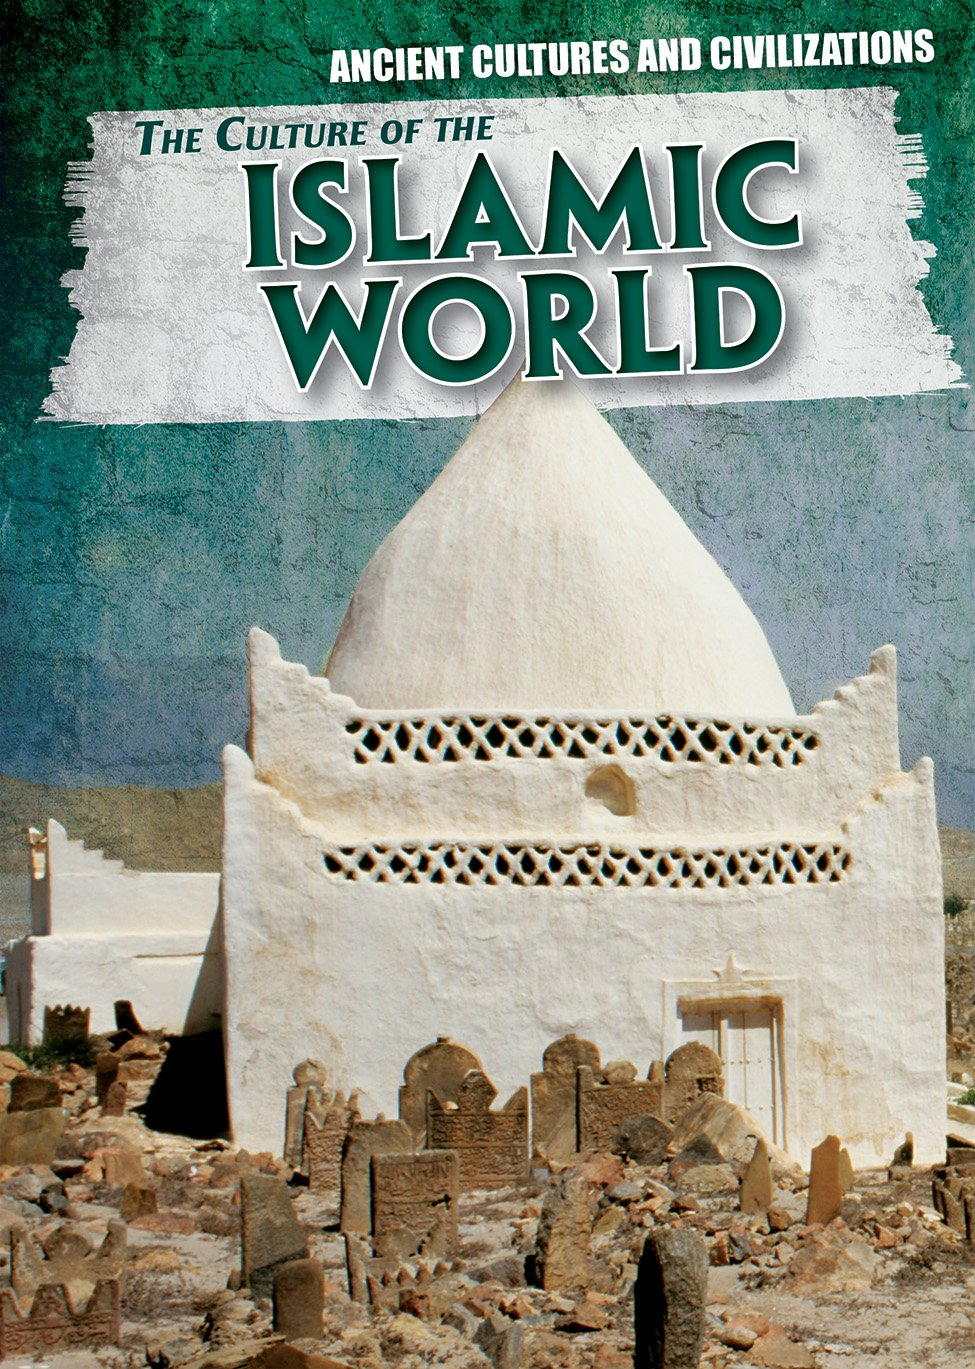 The Culture of the Islamic World (Ancient Cultures and Civilizations)